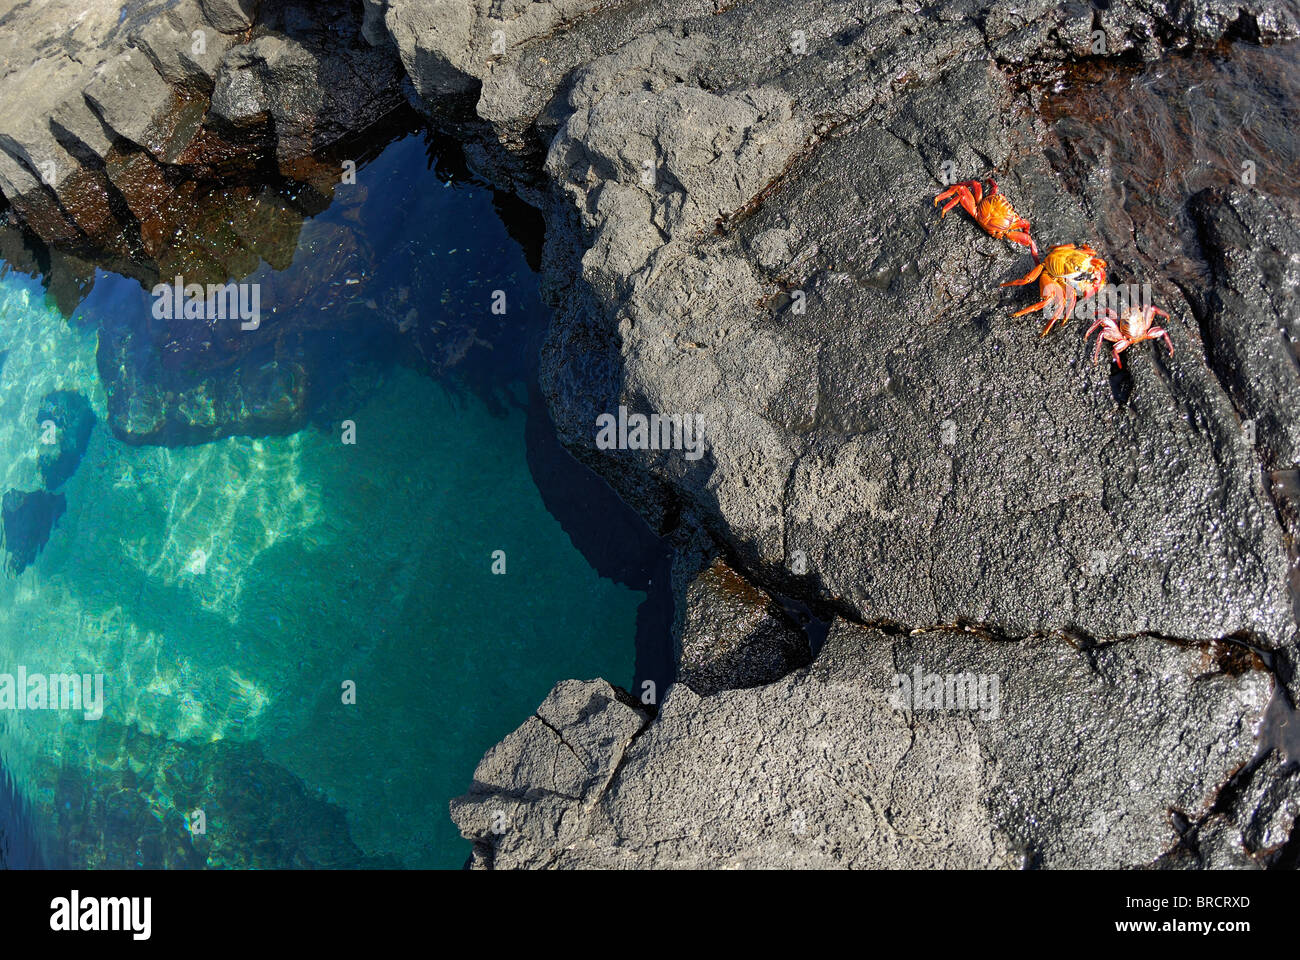 Pool of clear water and volcanic rocks with Sally Lightfoot Crabs (Grapsus grapsus) at Punta Vincente Roca, Galapagos - Stock Image